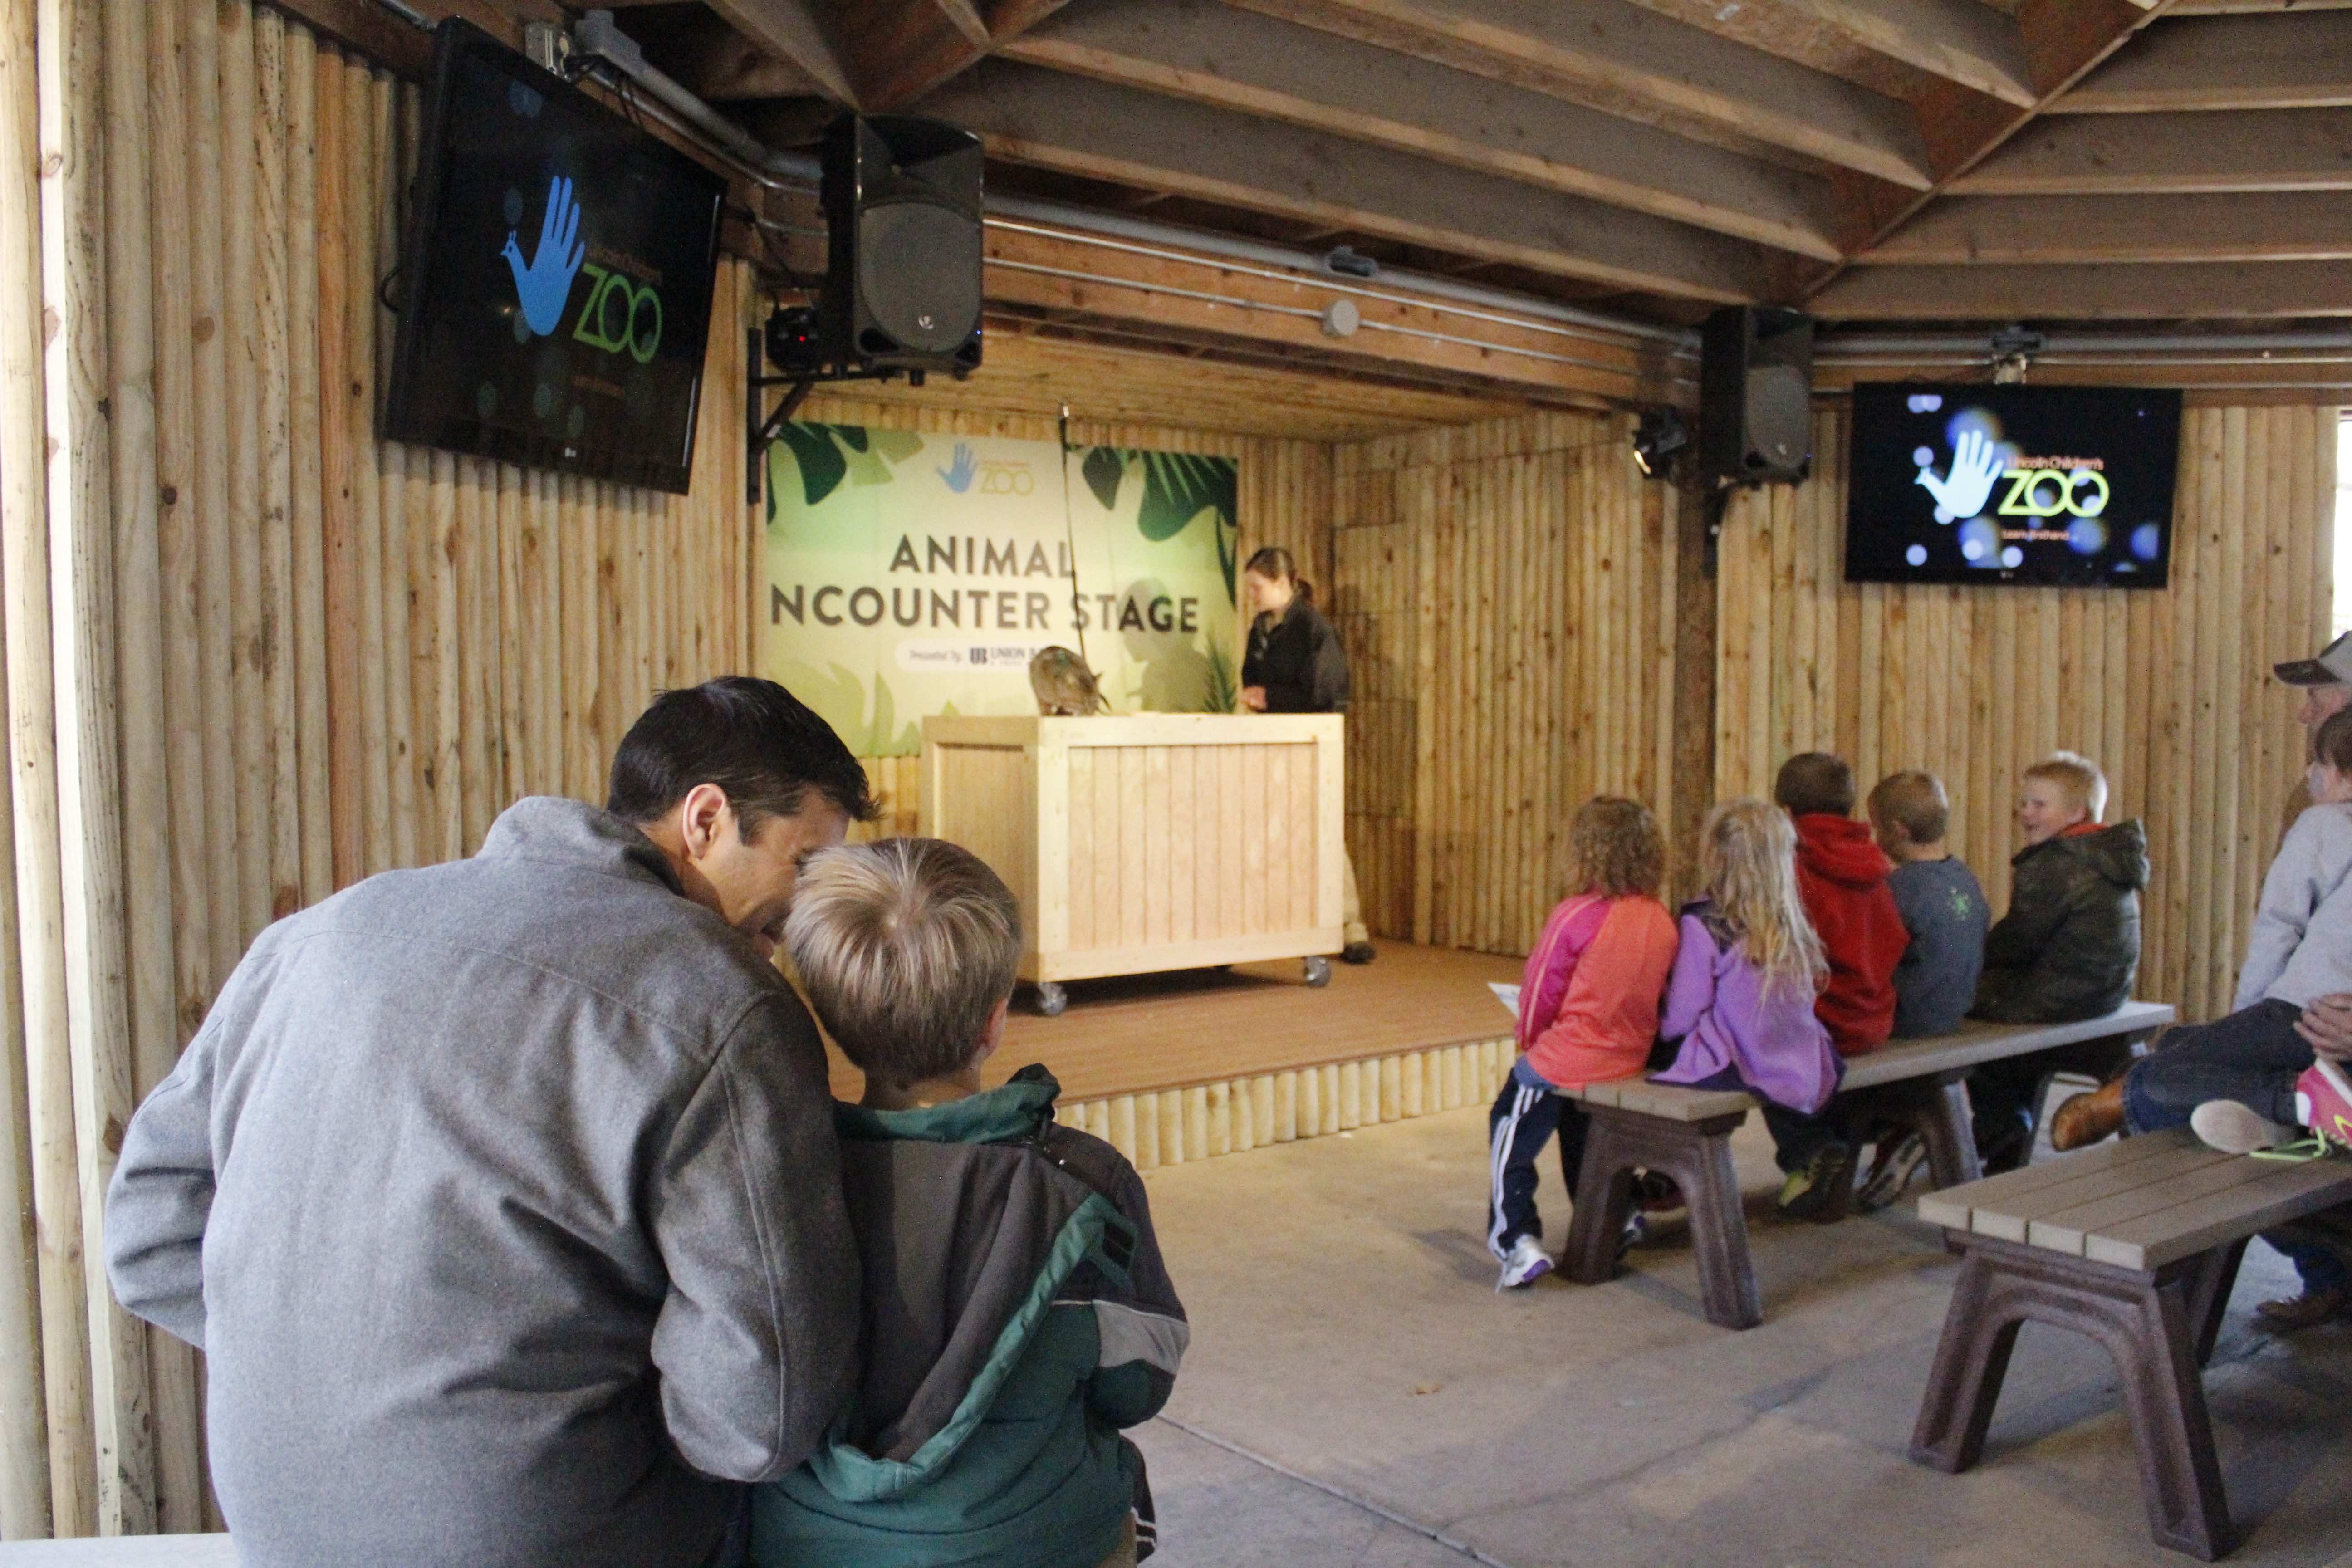 Buy Your Membership - Lincoln children's zoo birthday party